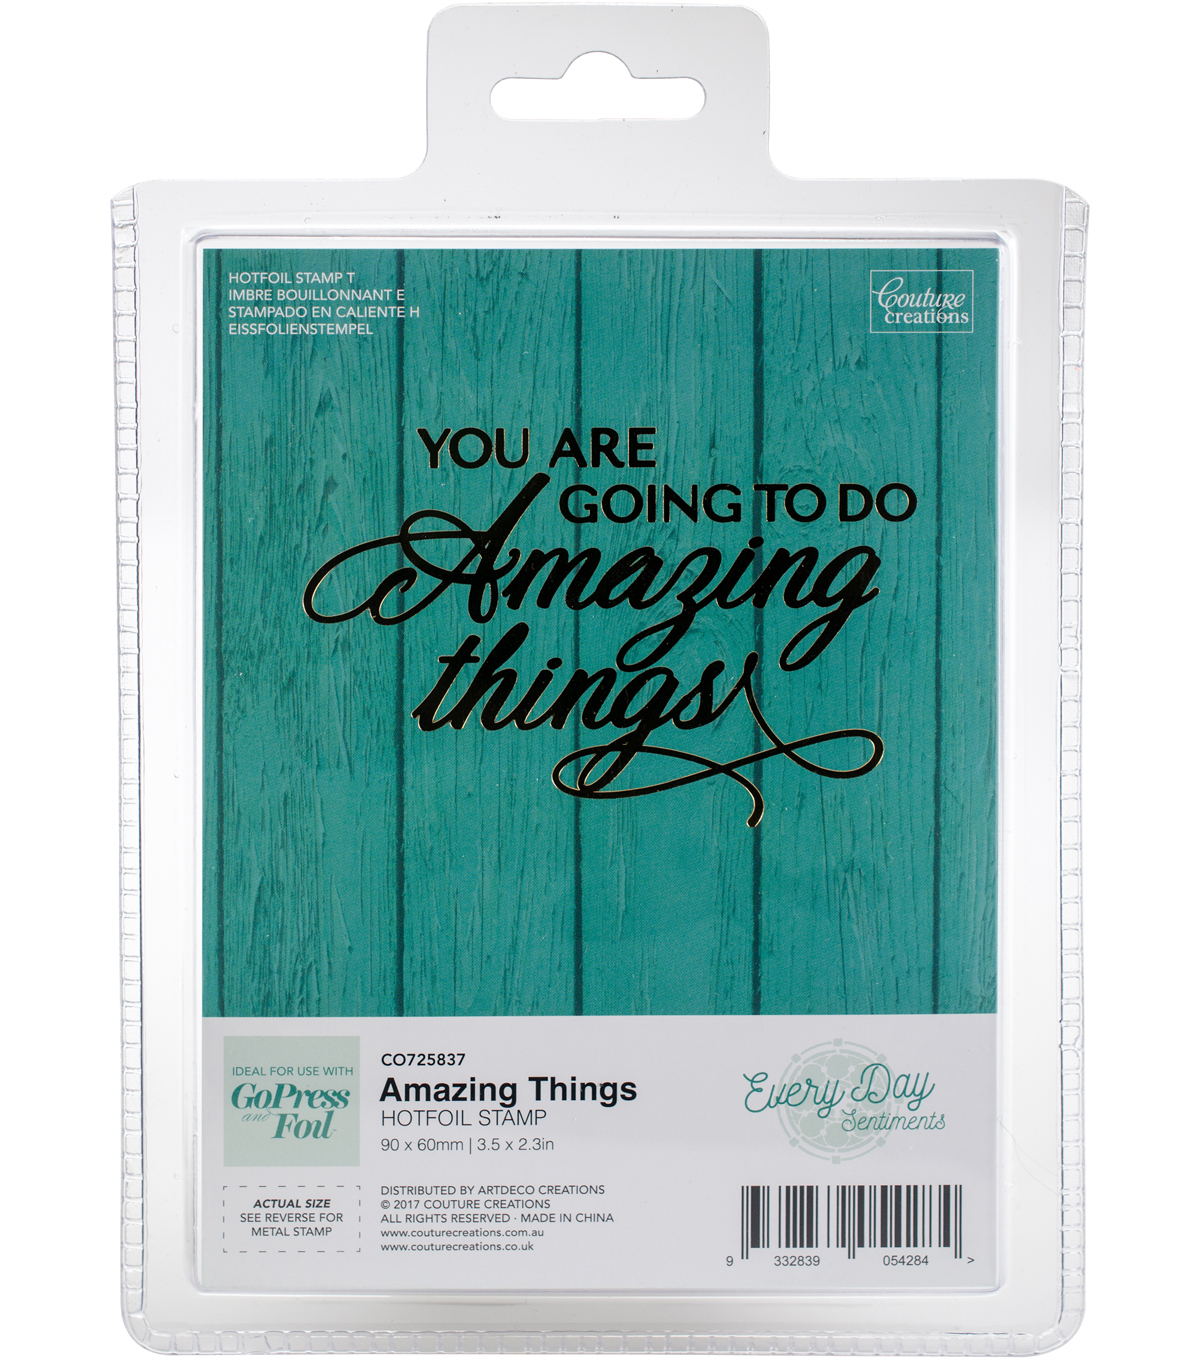 Couture Creations Every Day Sentiments Hotfoil Stamp-Amazing Things